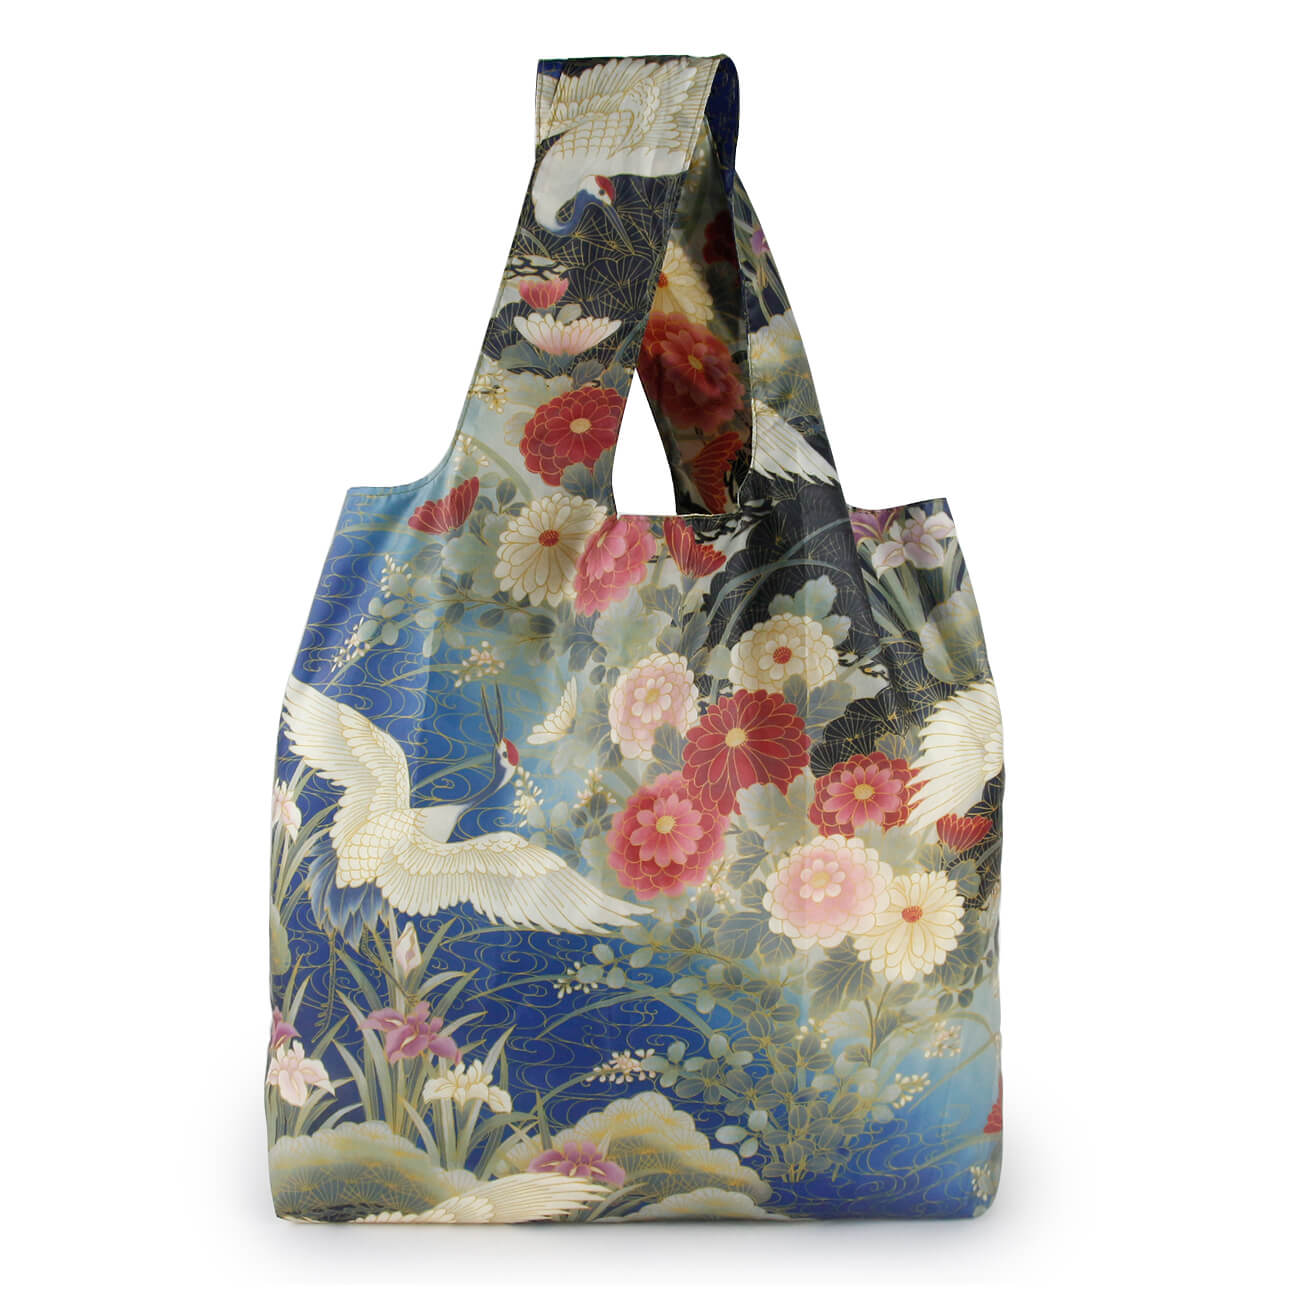 Foldable nylon tote bag